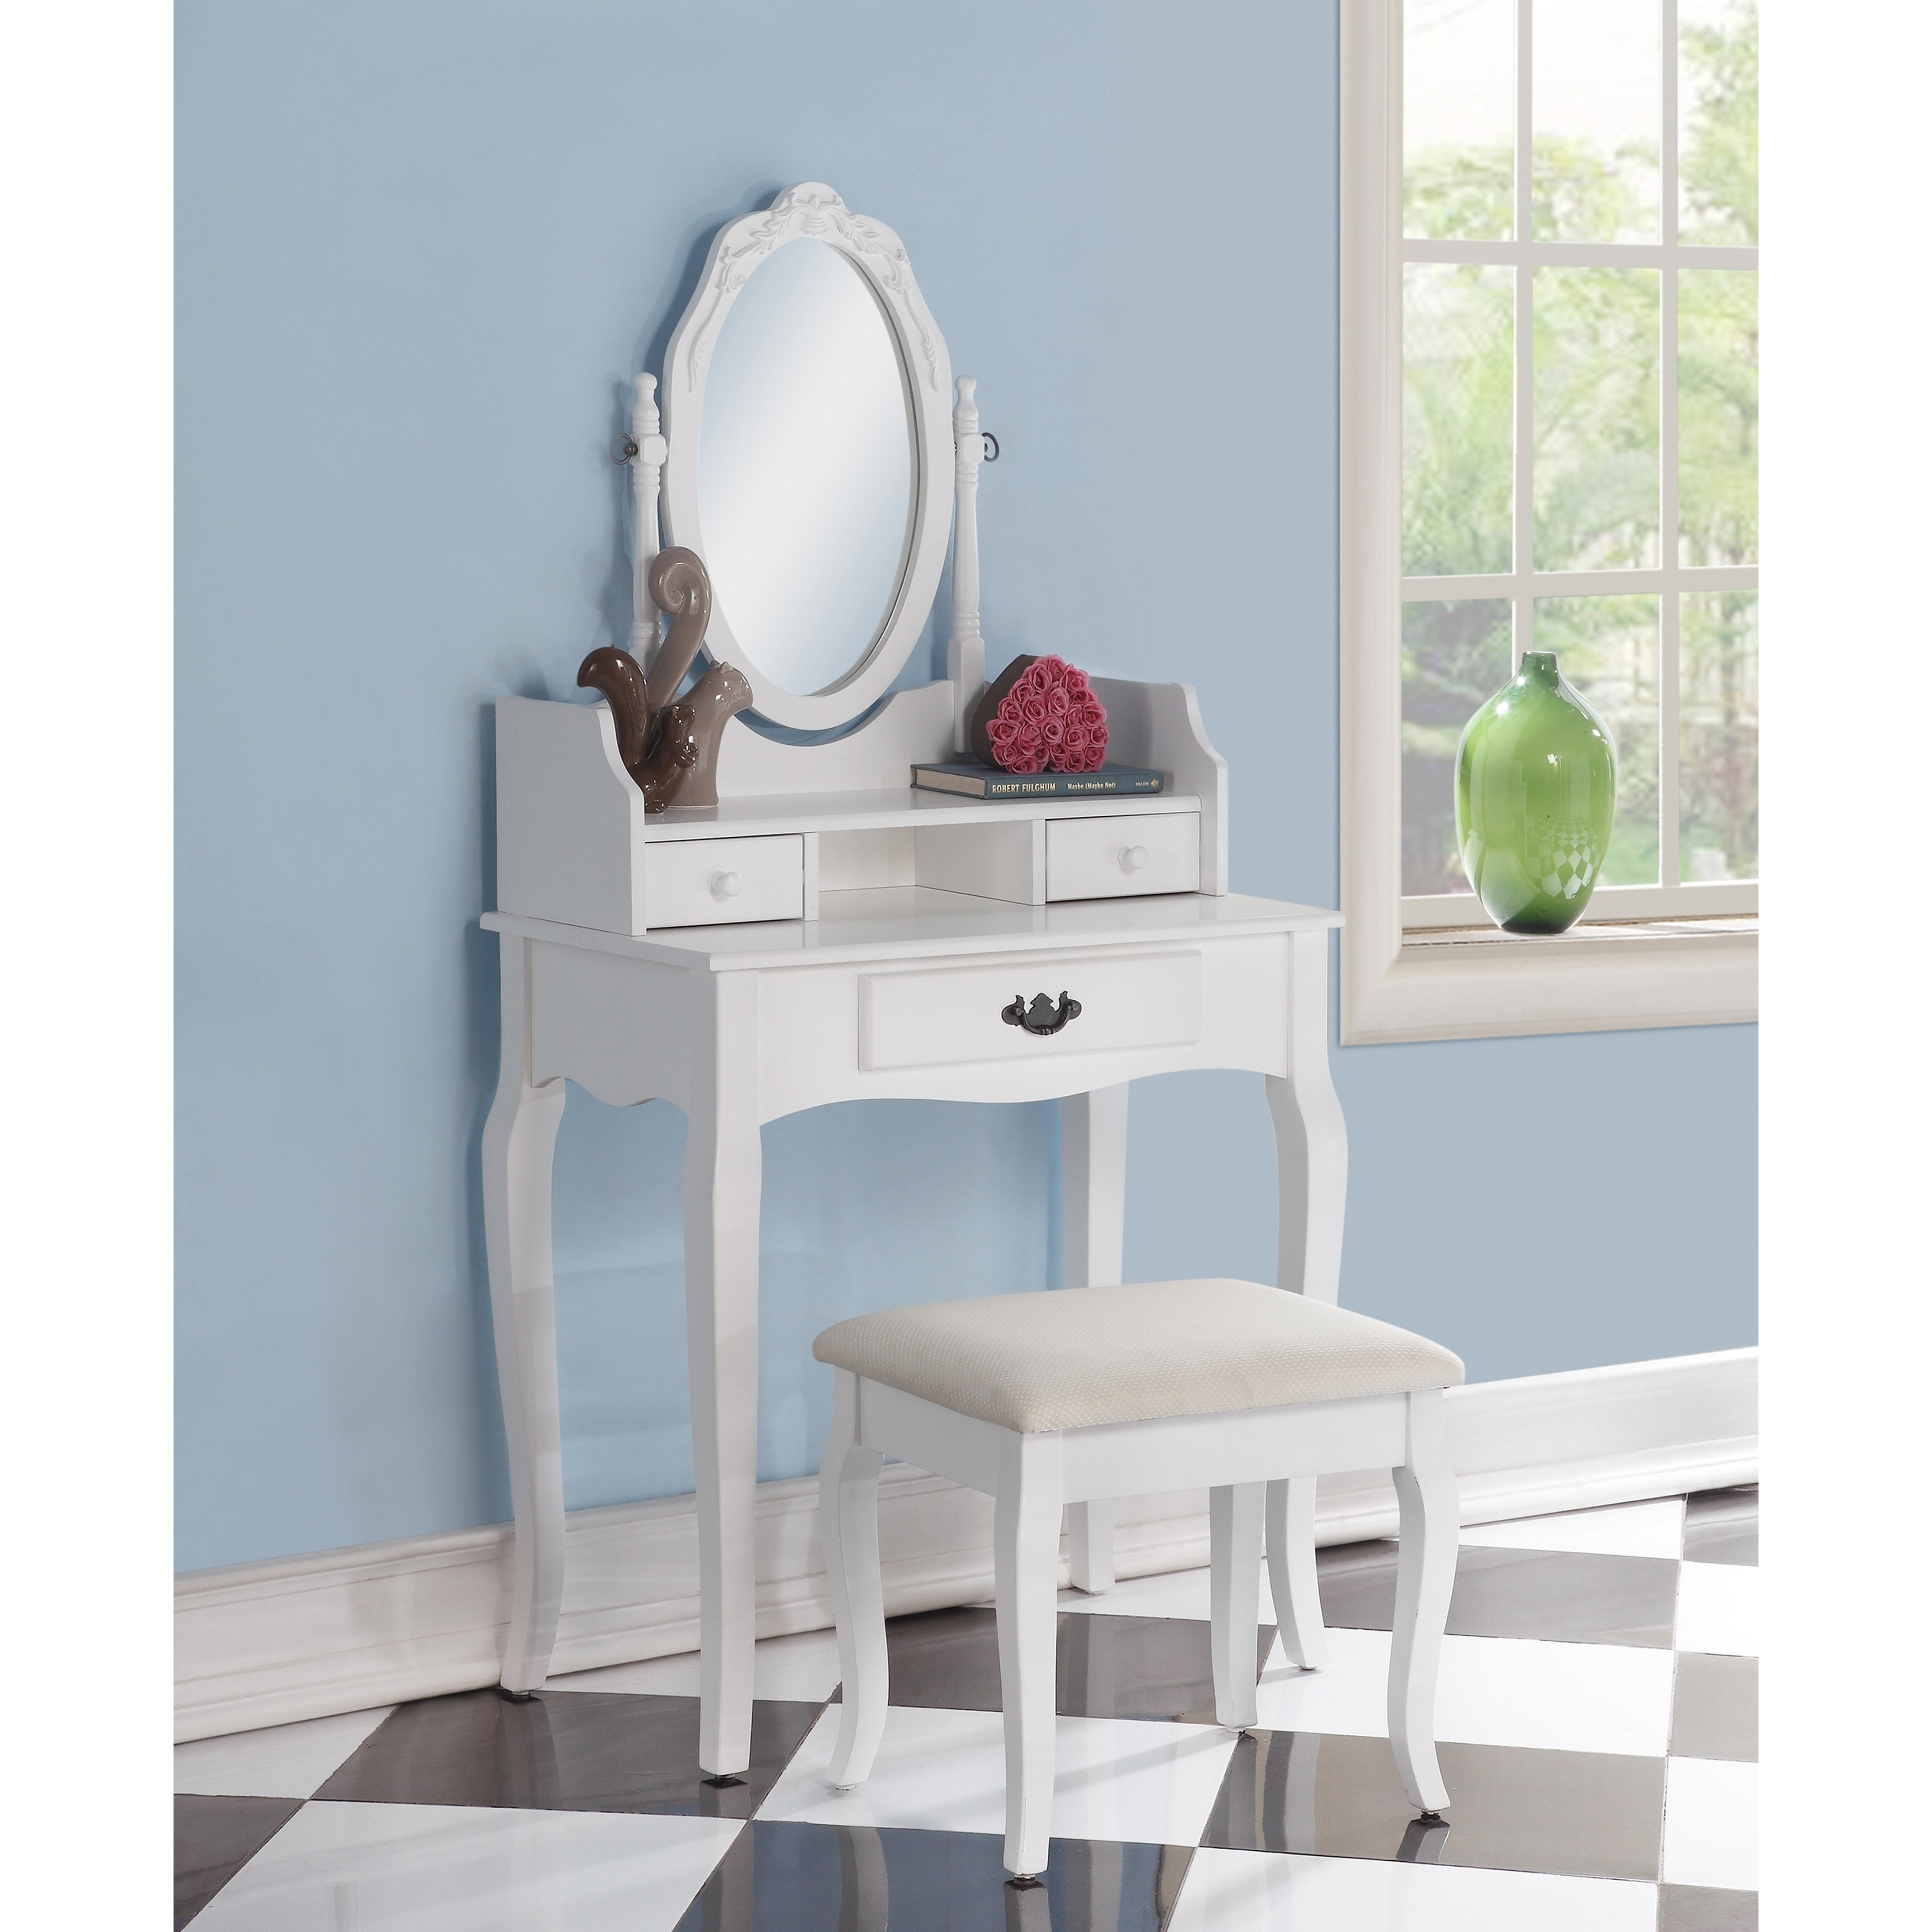 Ribbon Wood White Makeup Vanity Table and Stool Set (White)